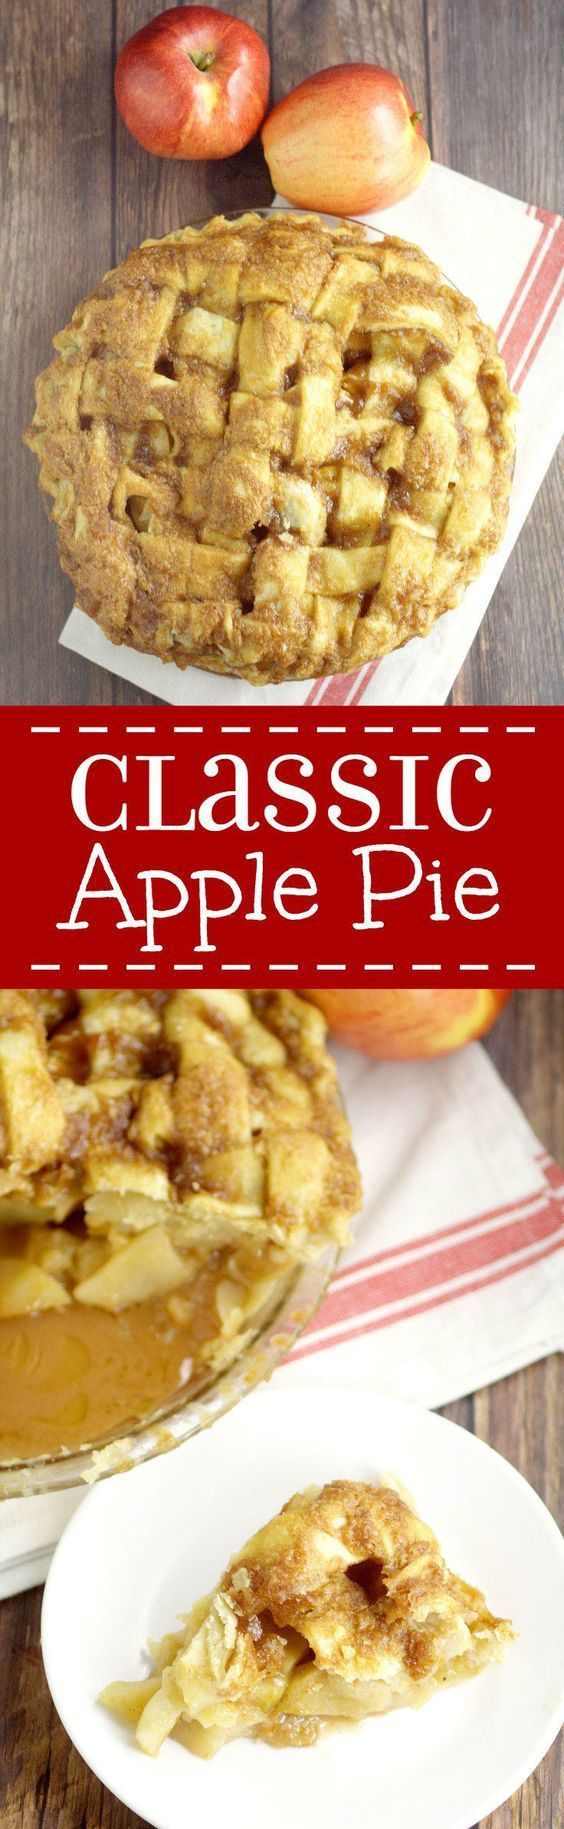 Classic sweet apple pie filling in a flaky pie crust topped with a glaze - this is a Thanksgiving dessert menu MUST! Classic Traditional Apple Pie Recipe | The Gracious Wife